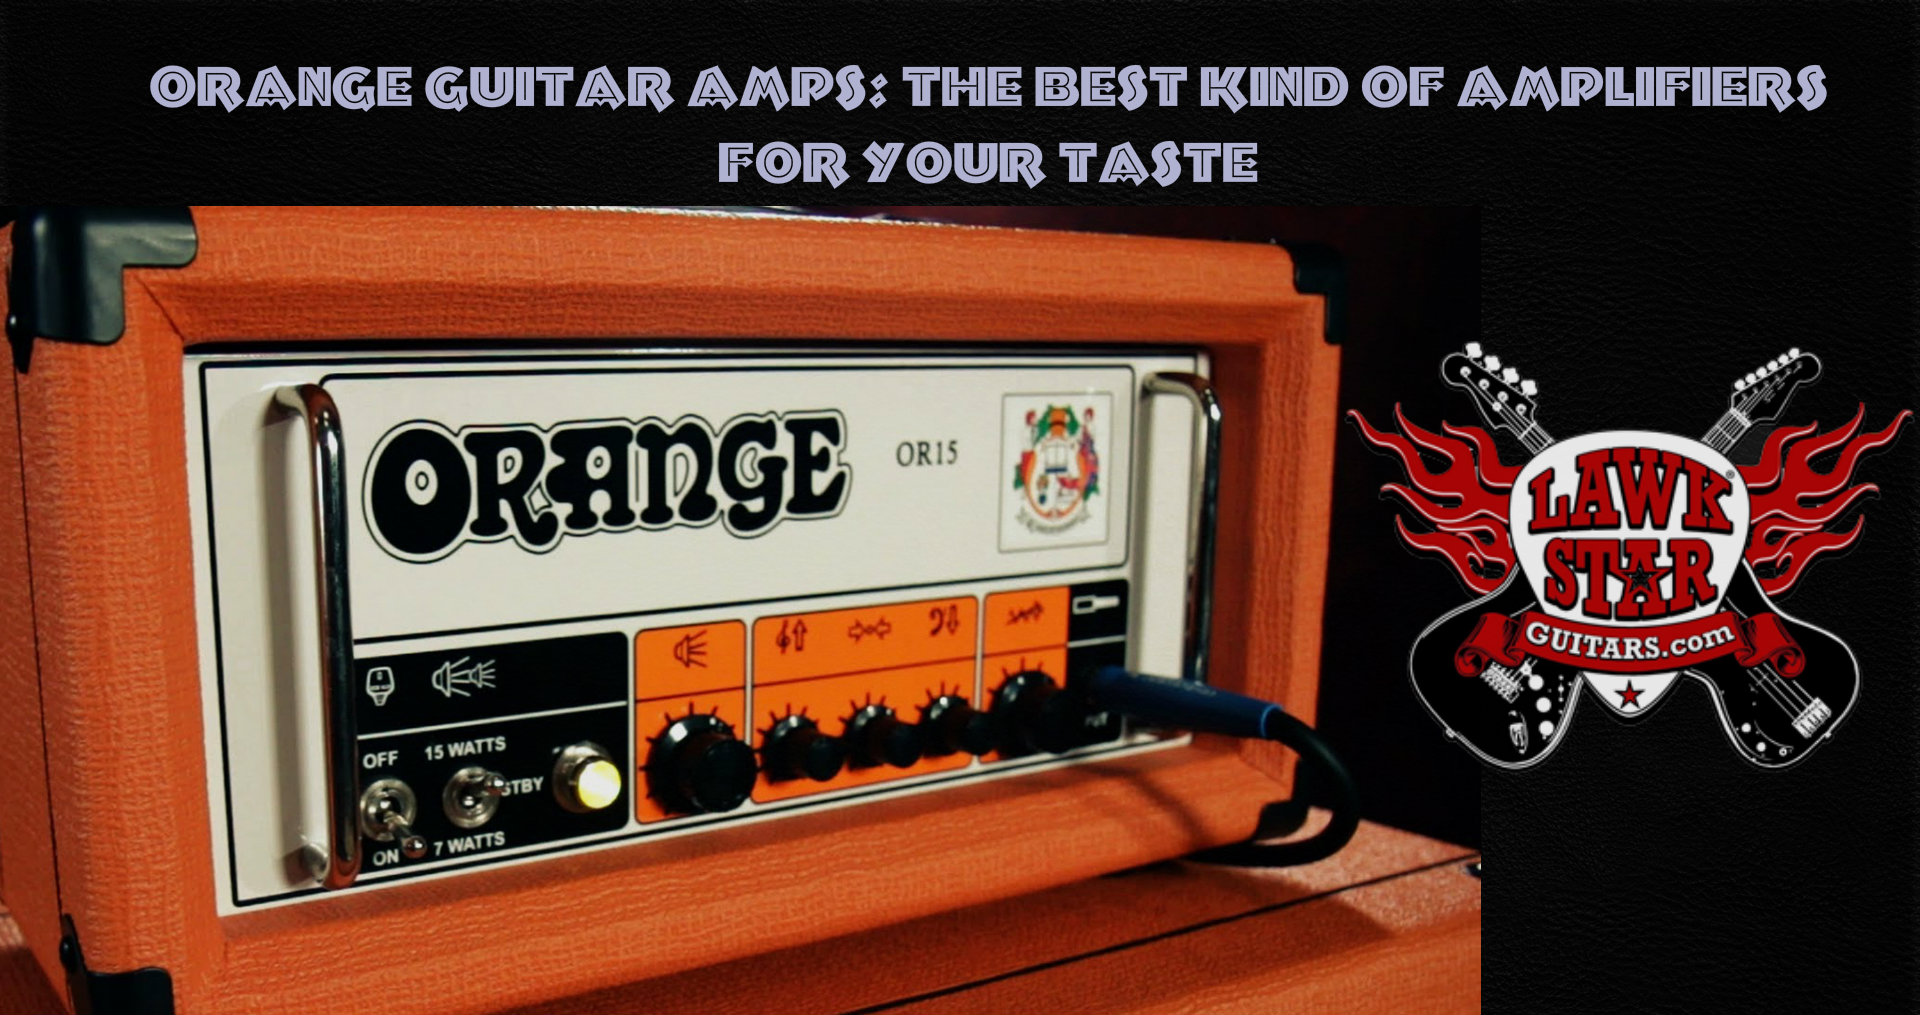 ORANGE GUITAR AMPS: THE BEST KIND OF AMPLIFIERS FOR YOUR TASTE